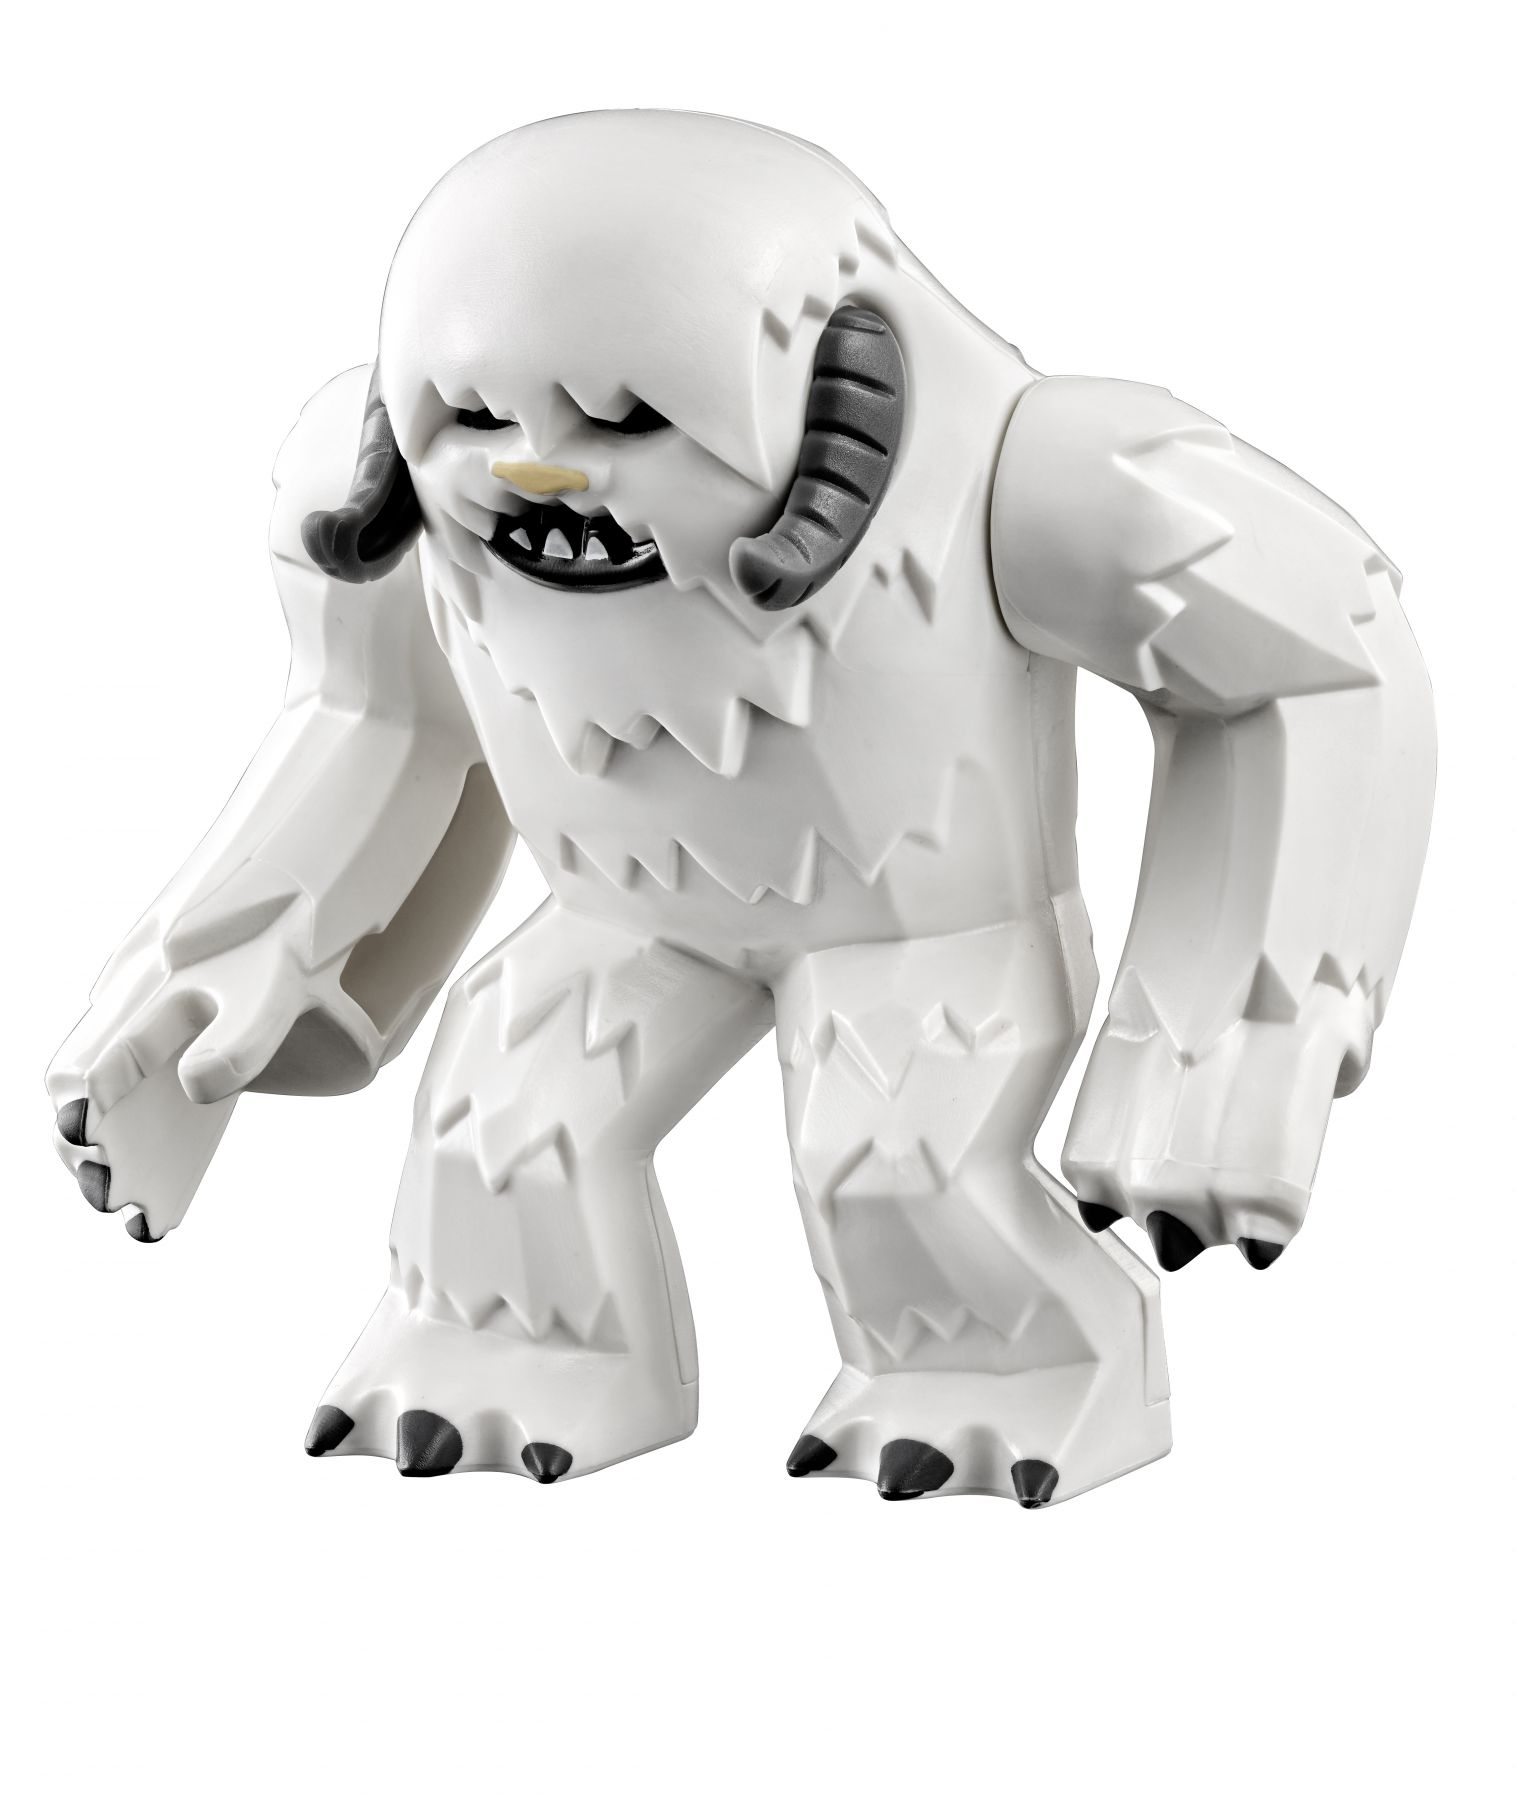 LEGO Star Wars 75098 Angriff auf Hoth™ LEGO-75098-Assault-on-Hoth-Minifigure_02.jpg